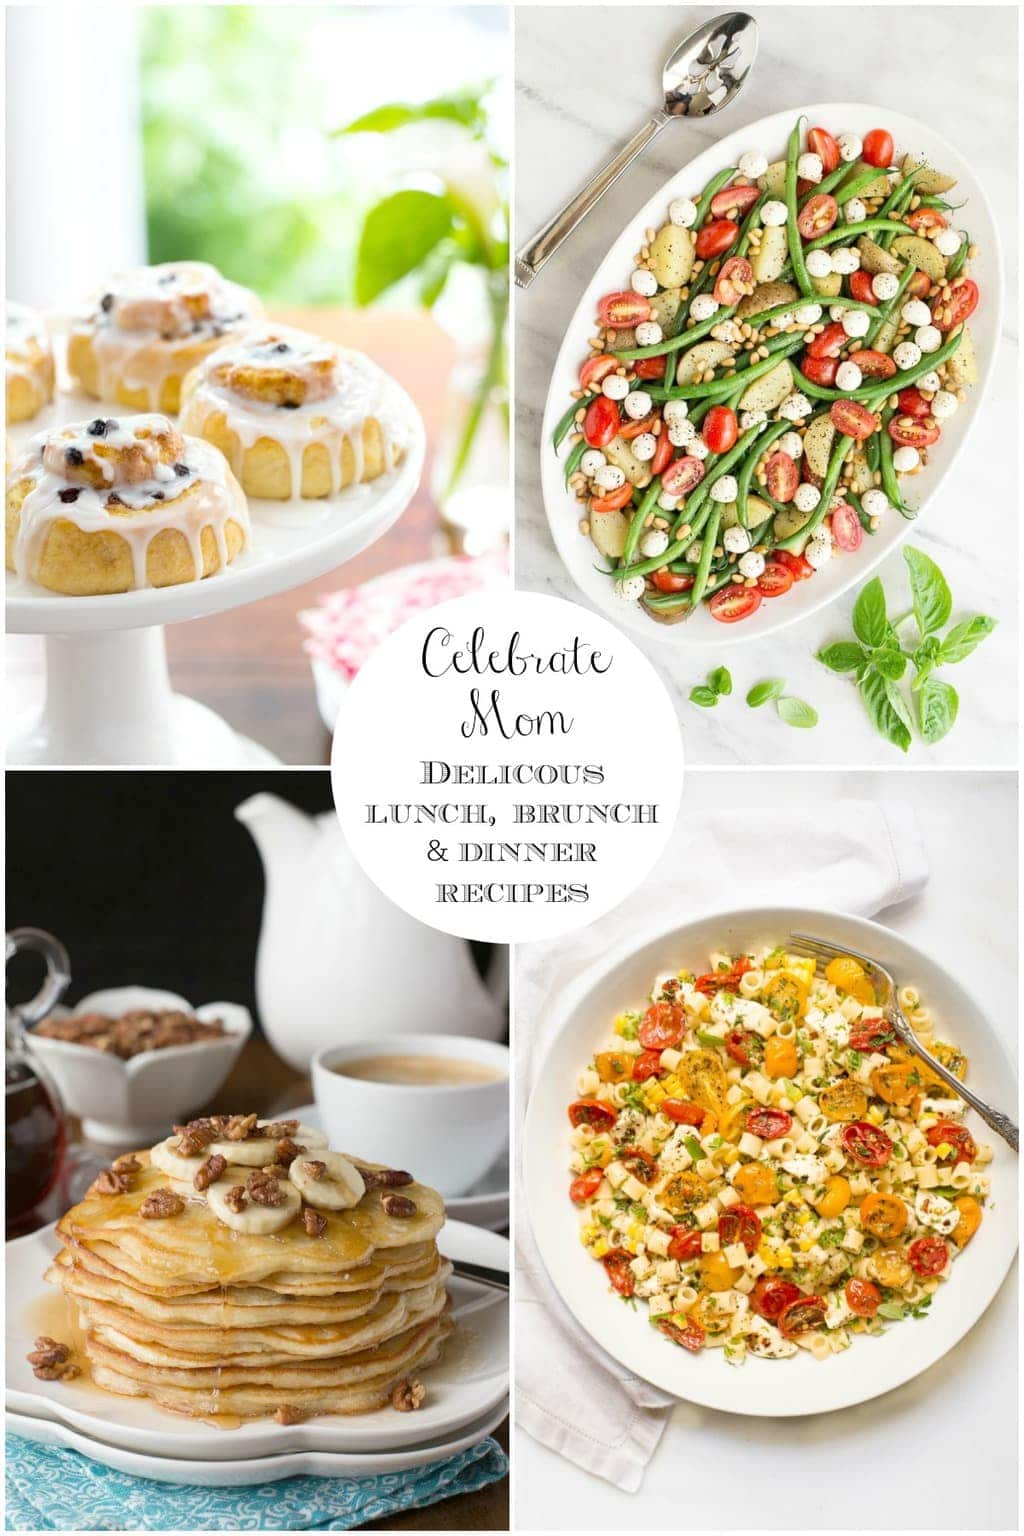 Collate of photos of Brunch, Lunch and Dinner Recipes for Mother's Day.